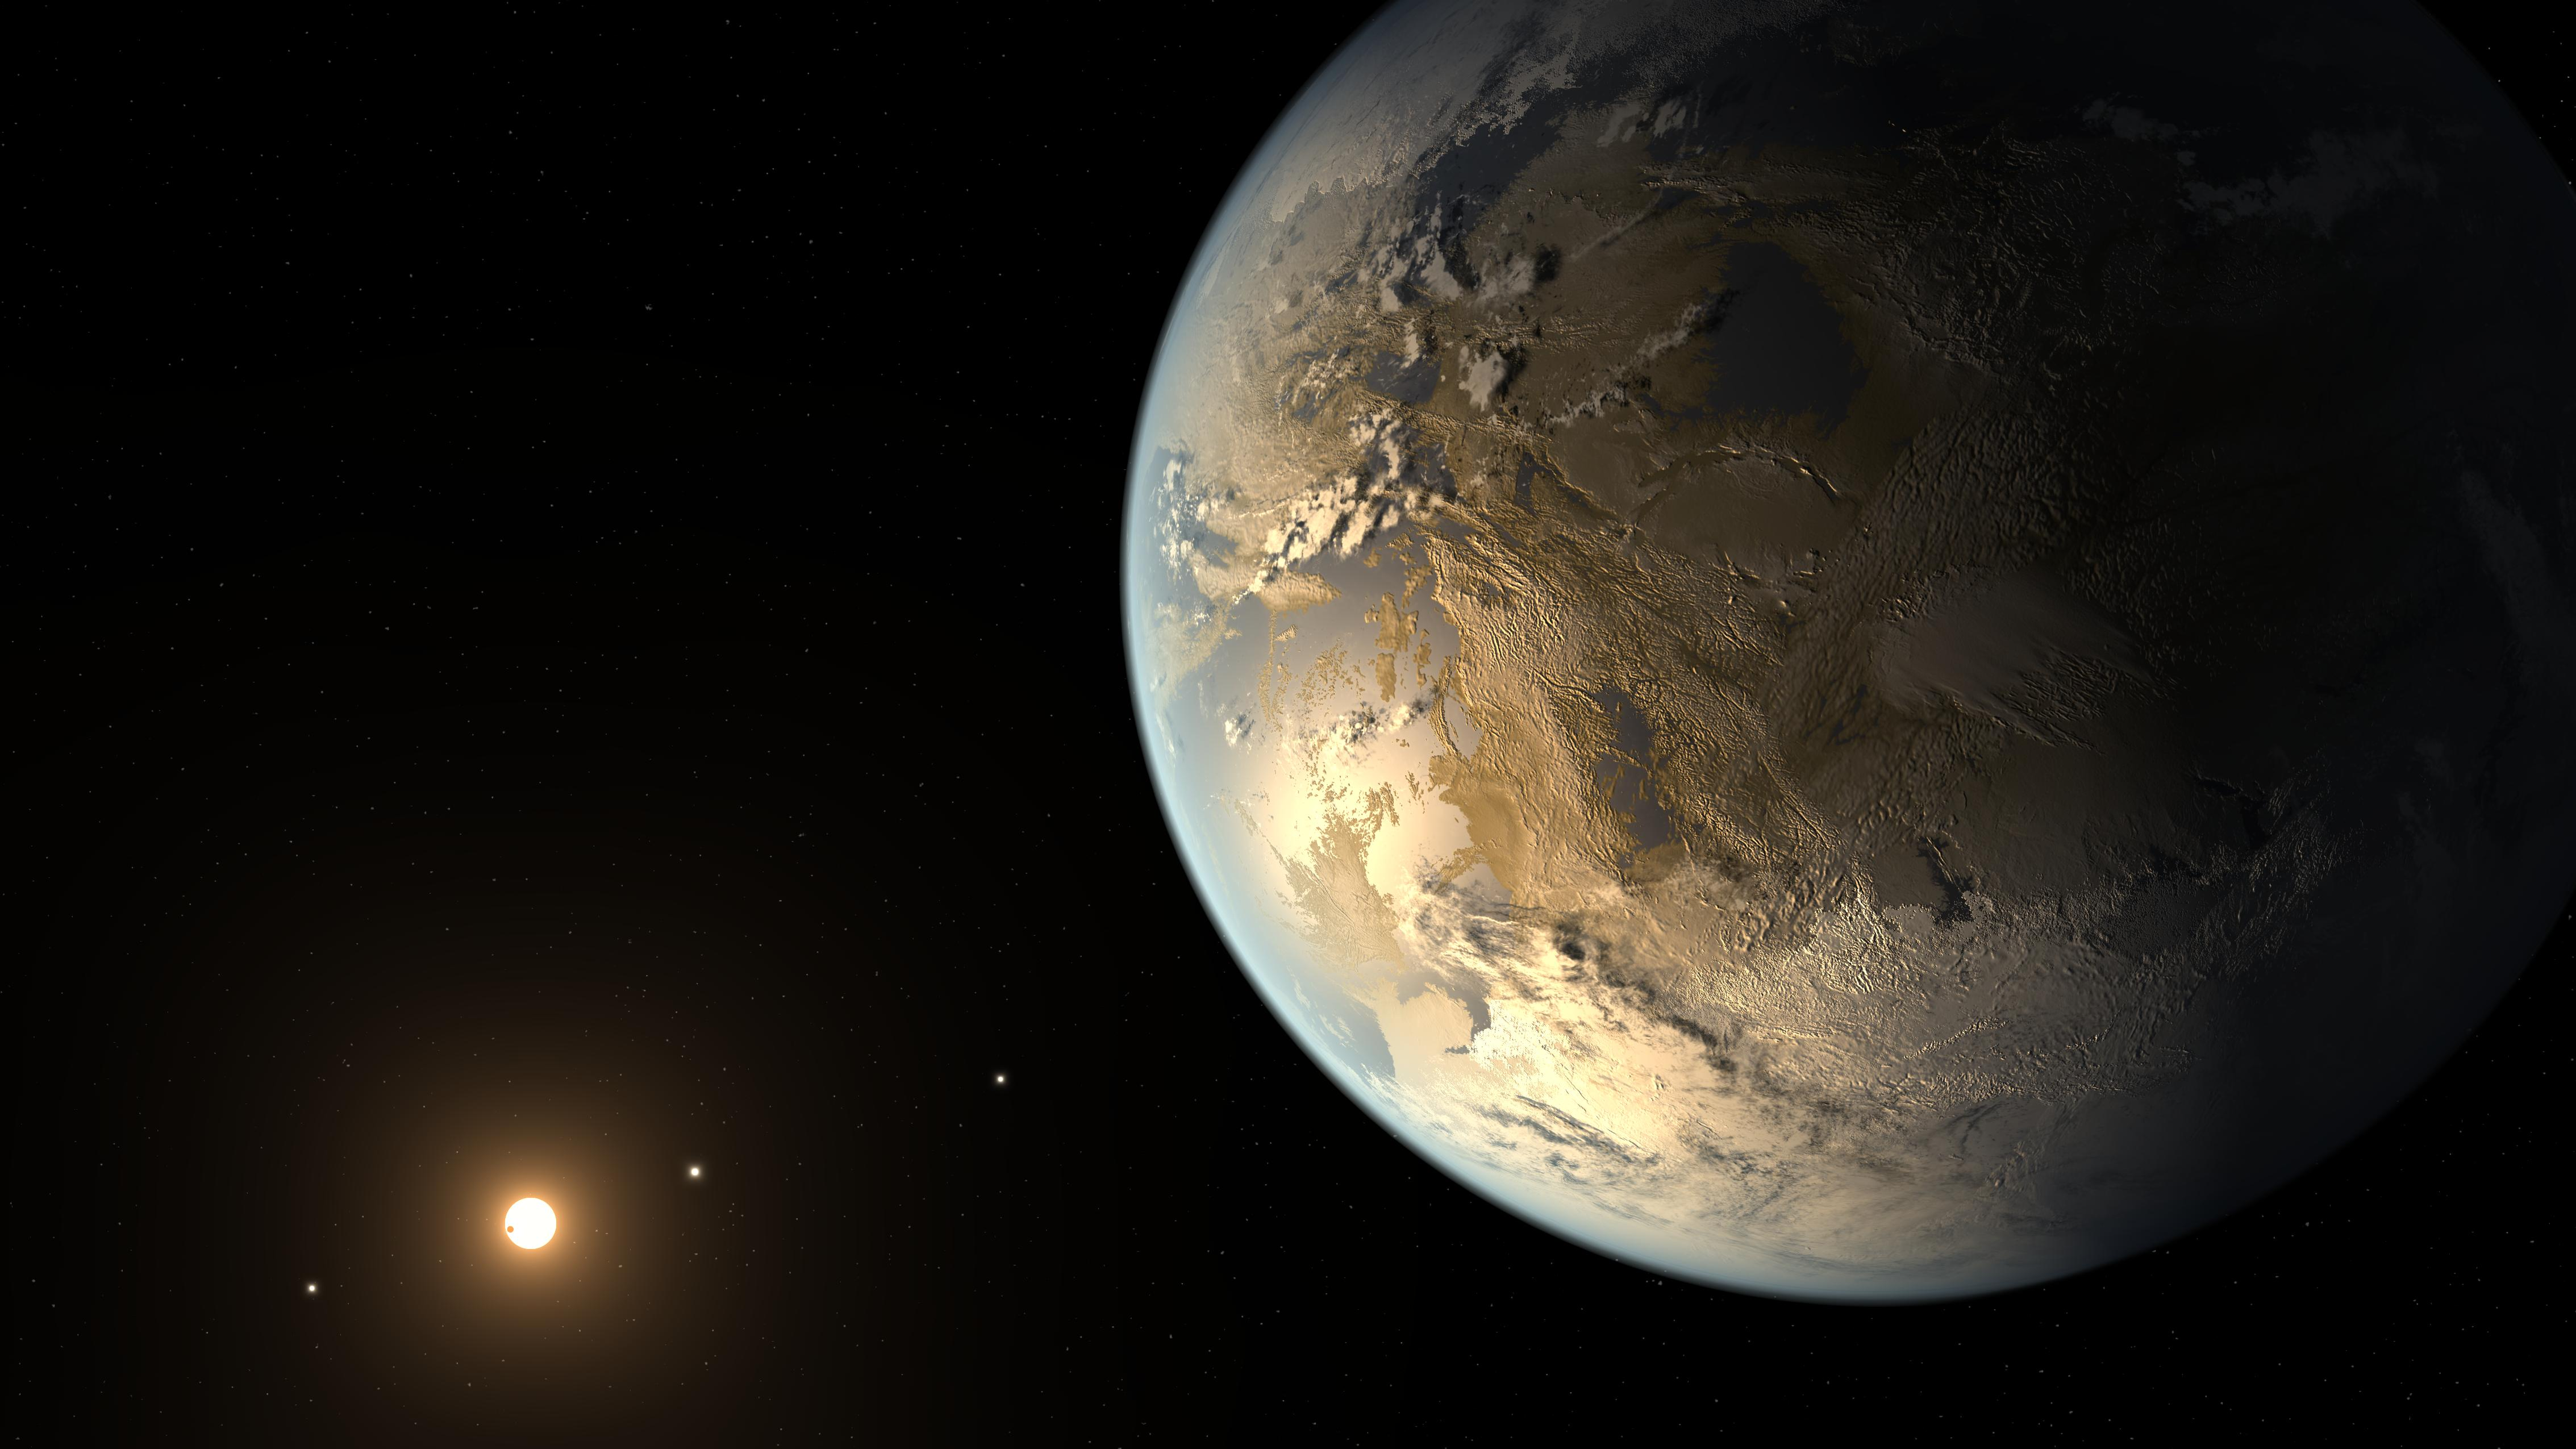 An artist's impression of the rocky exoplanet Kepler-186f, which is one of the most promising candidates for a planet could potentially be habitable, but how similar or different does it have to be compared to Earth to be able to support life? Image credit: NASA/Ames/SETI Institute/JPL–Caltech. Image credit: None